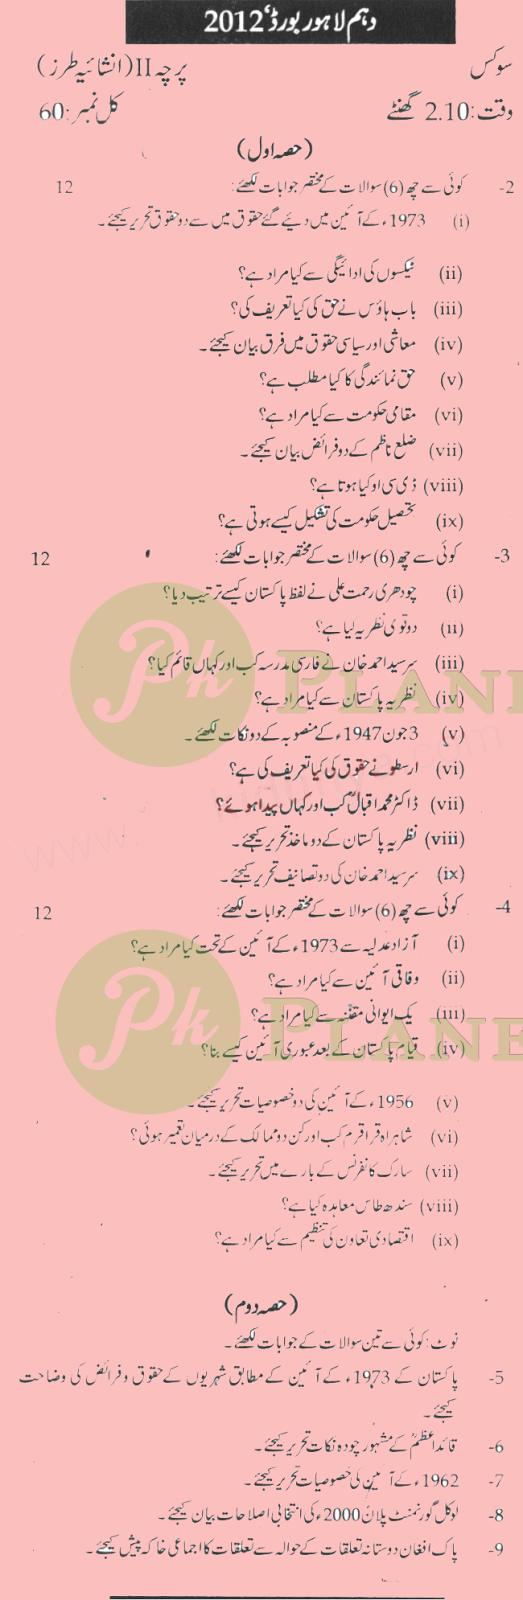 Past Papers of 10th Class Lahore Board Civics 2012